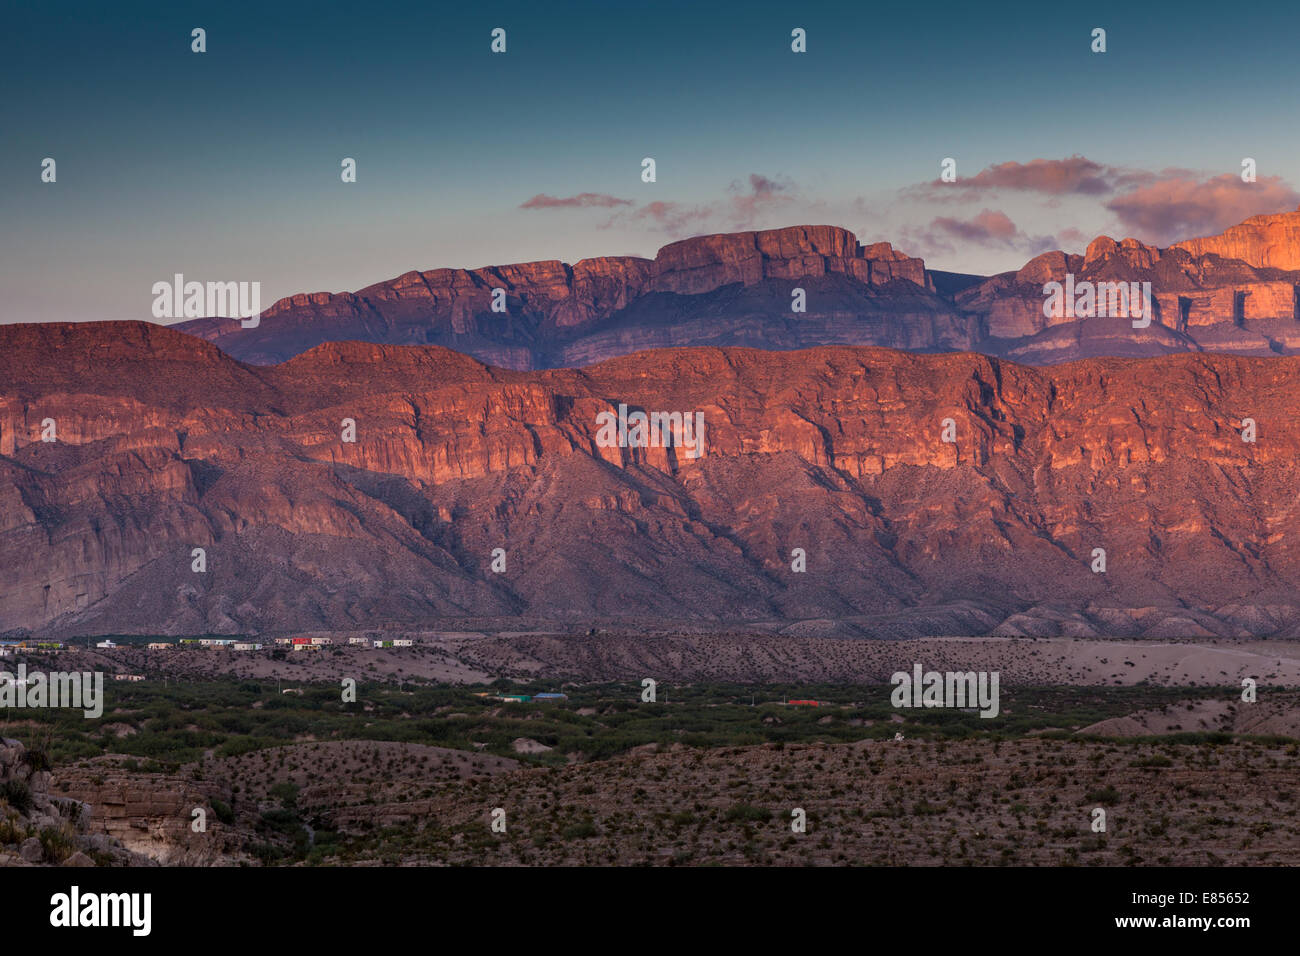 Sunset over the village of Boquillas in Boquillas Canyon with a backdrop of the Sierra del Carmen mountains of Mexico. Stock Photo